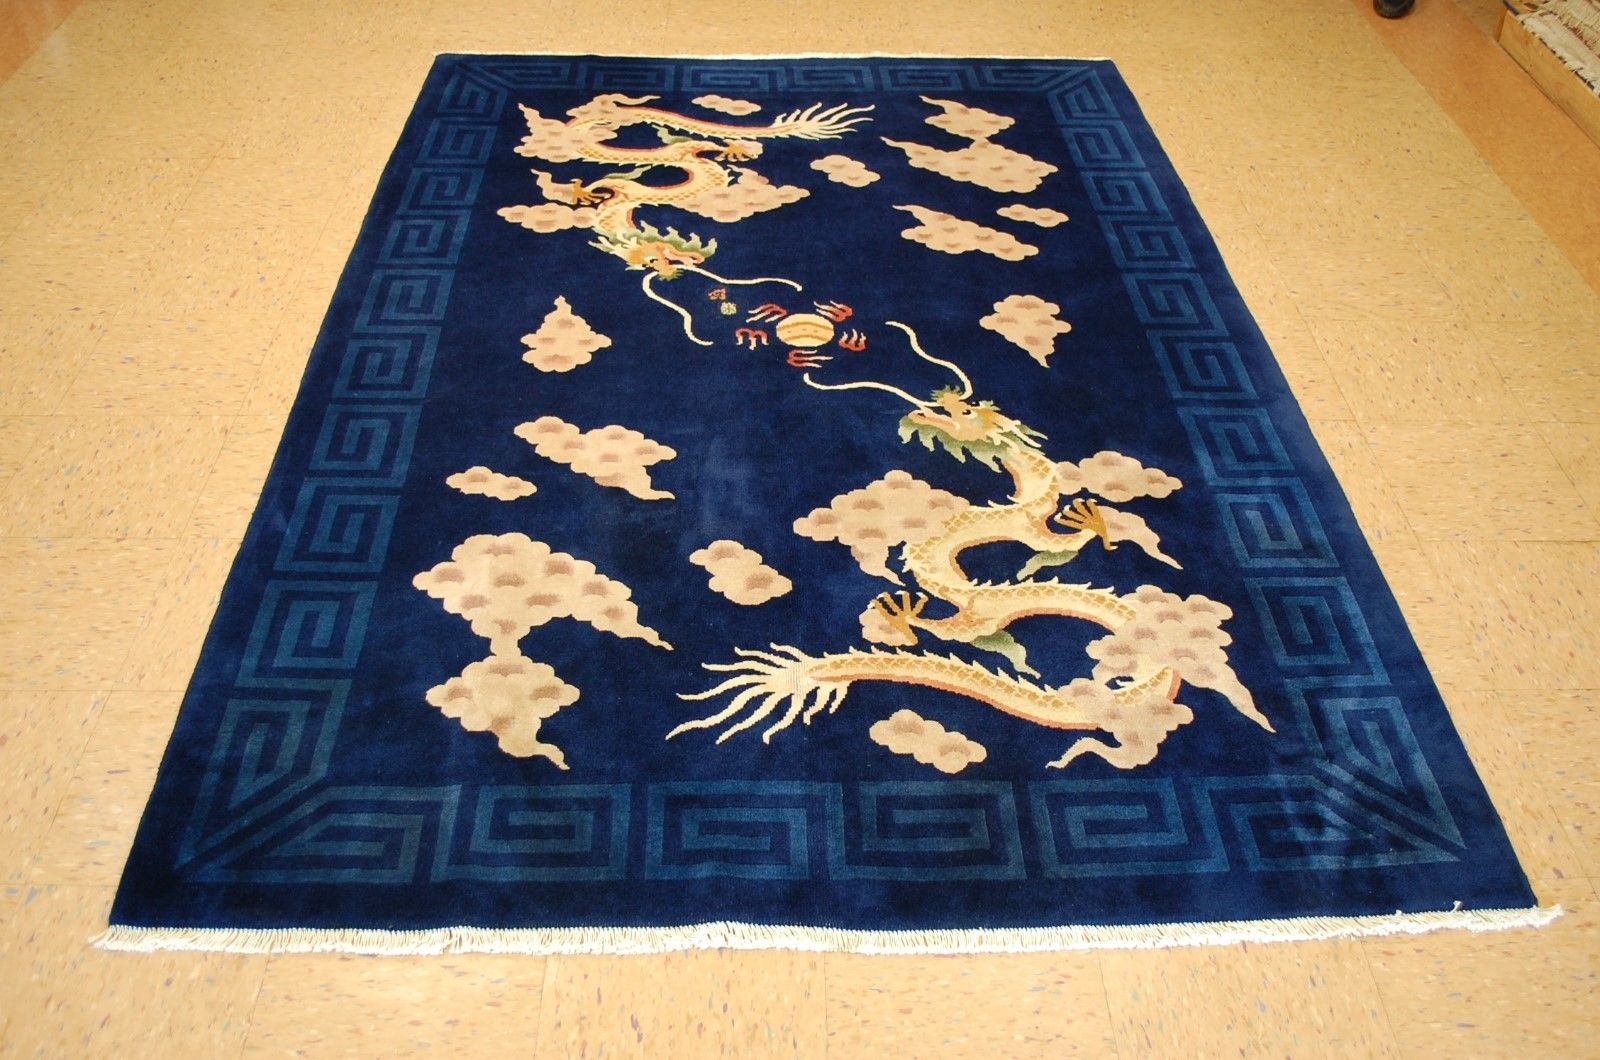 5'6 x 8′ Hand-knotted Antique Wool Chinese Art Deco Two Dragons Playing with a Pearl (二龙戏珠) Rug 12980543 (10)